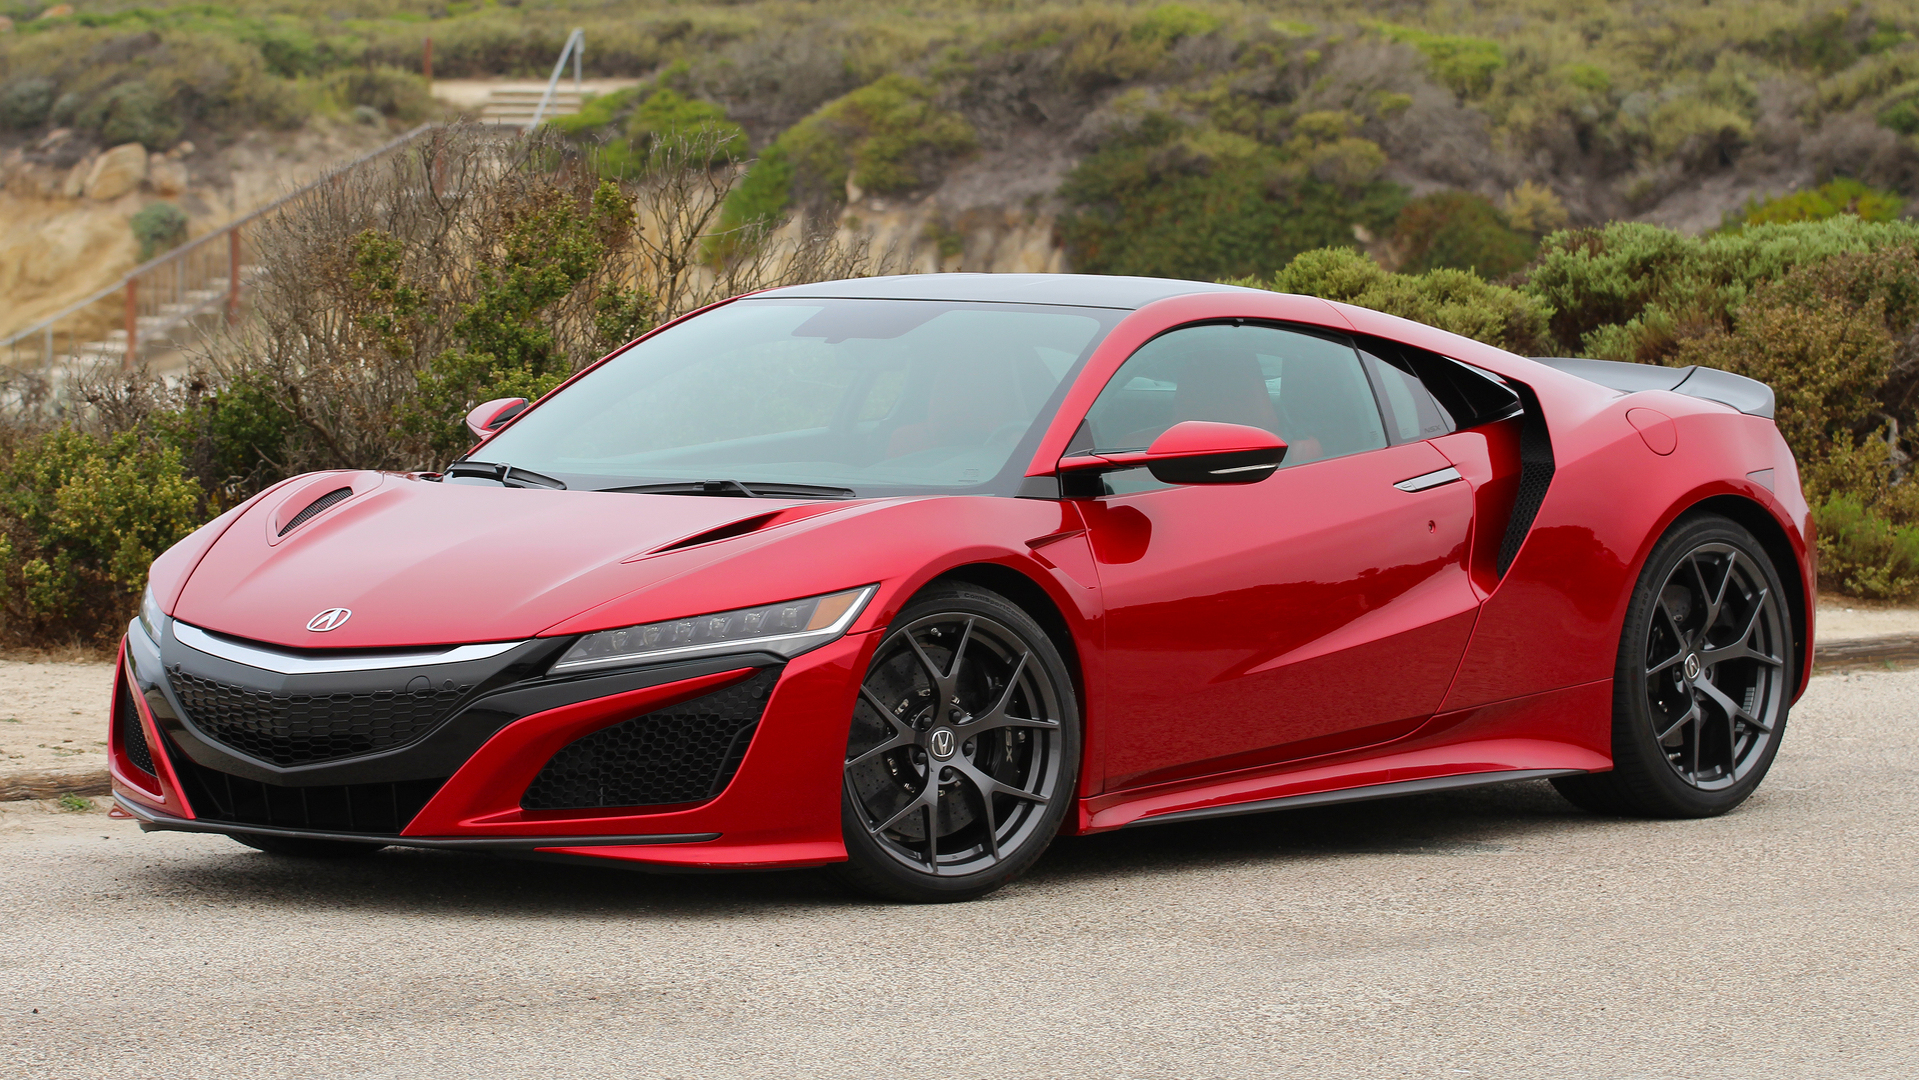 Acura Cars For Sale Uk